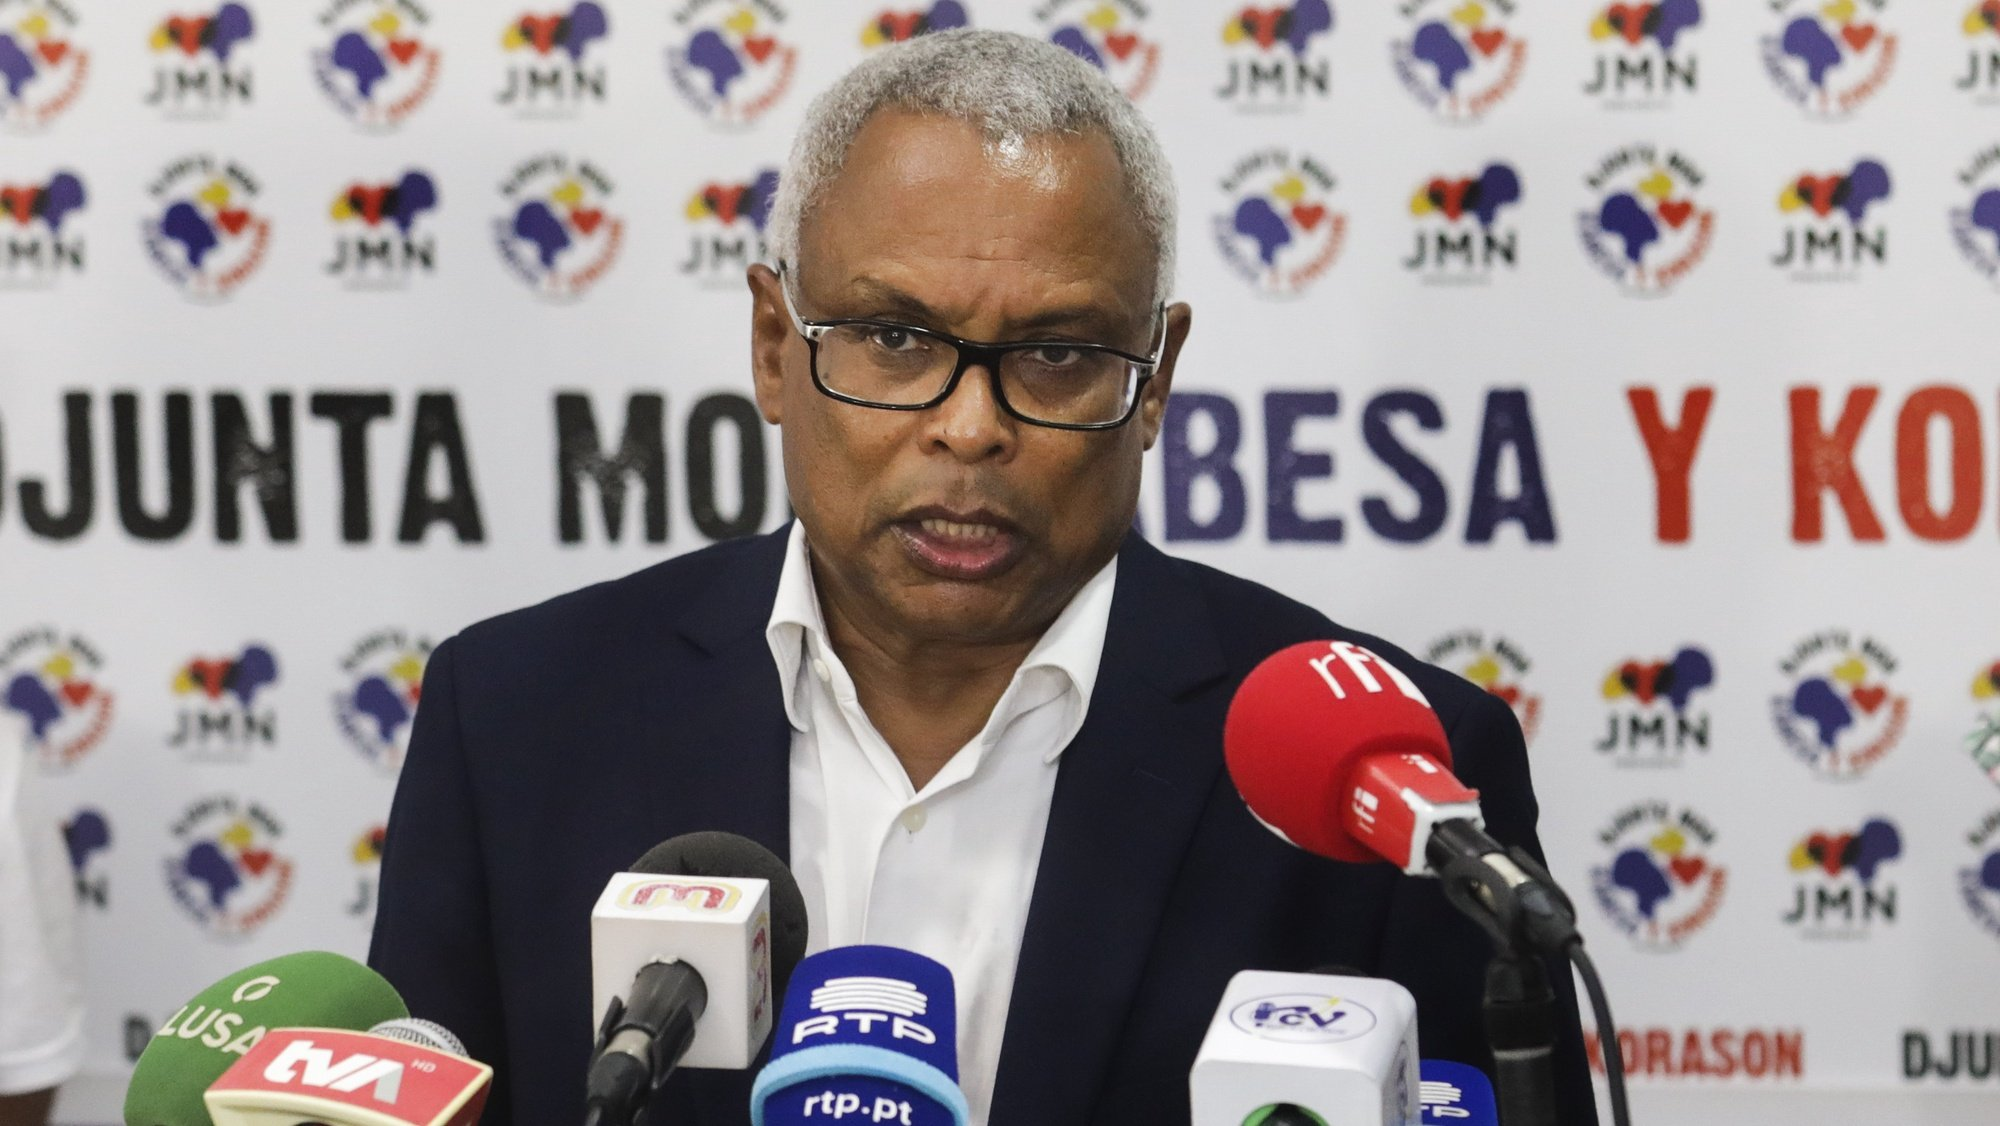 The candidate for President of the Republic of Cape Verde, José Maria Neves, addresses his victory speech in the 2021 presidential elections, in Praia, Santiago Island, Cape Verde, 17 October 2021 (issued on 18 October 2021). Former Cape Verde Prime Minister Jose Maria Neves was elected this Sunday, in the first round, the fifth President of the Republic of Cape Verde, with 51.5% of the votes, according to the provisional tabulation data. ELTON MONTEIRO/LUSA